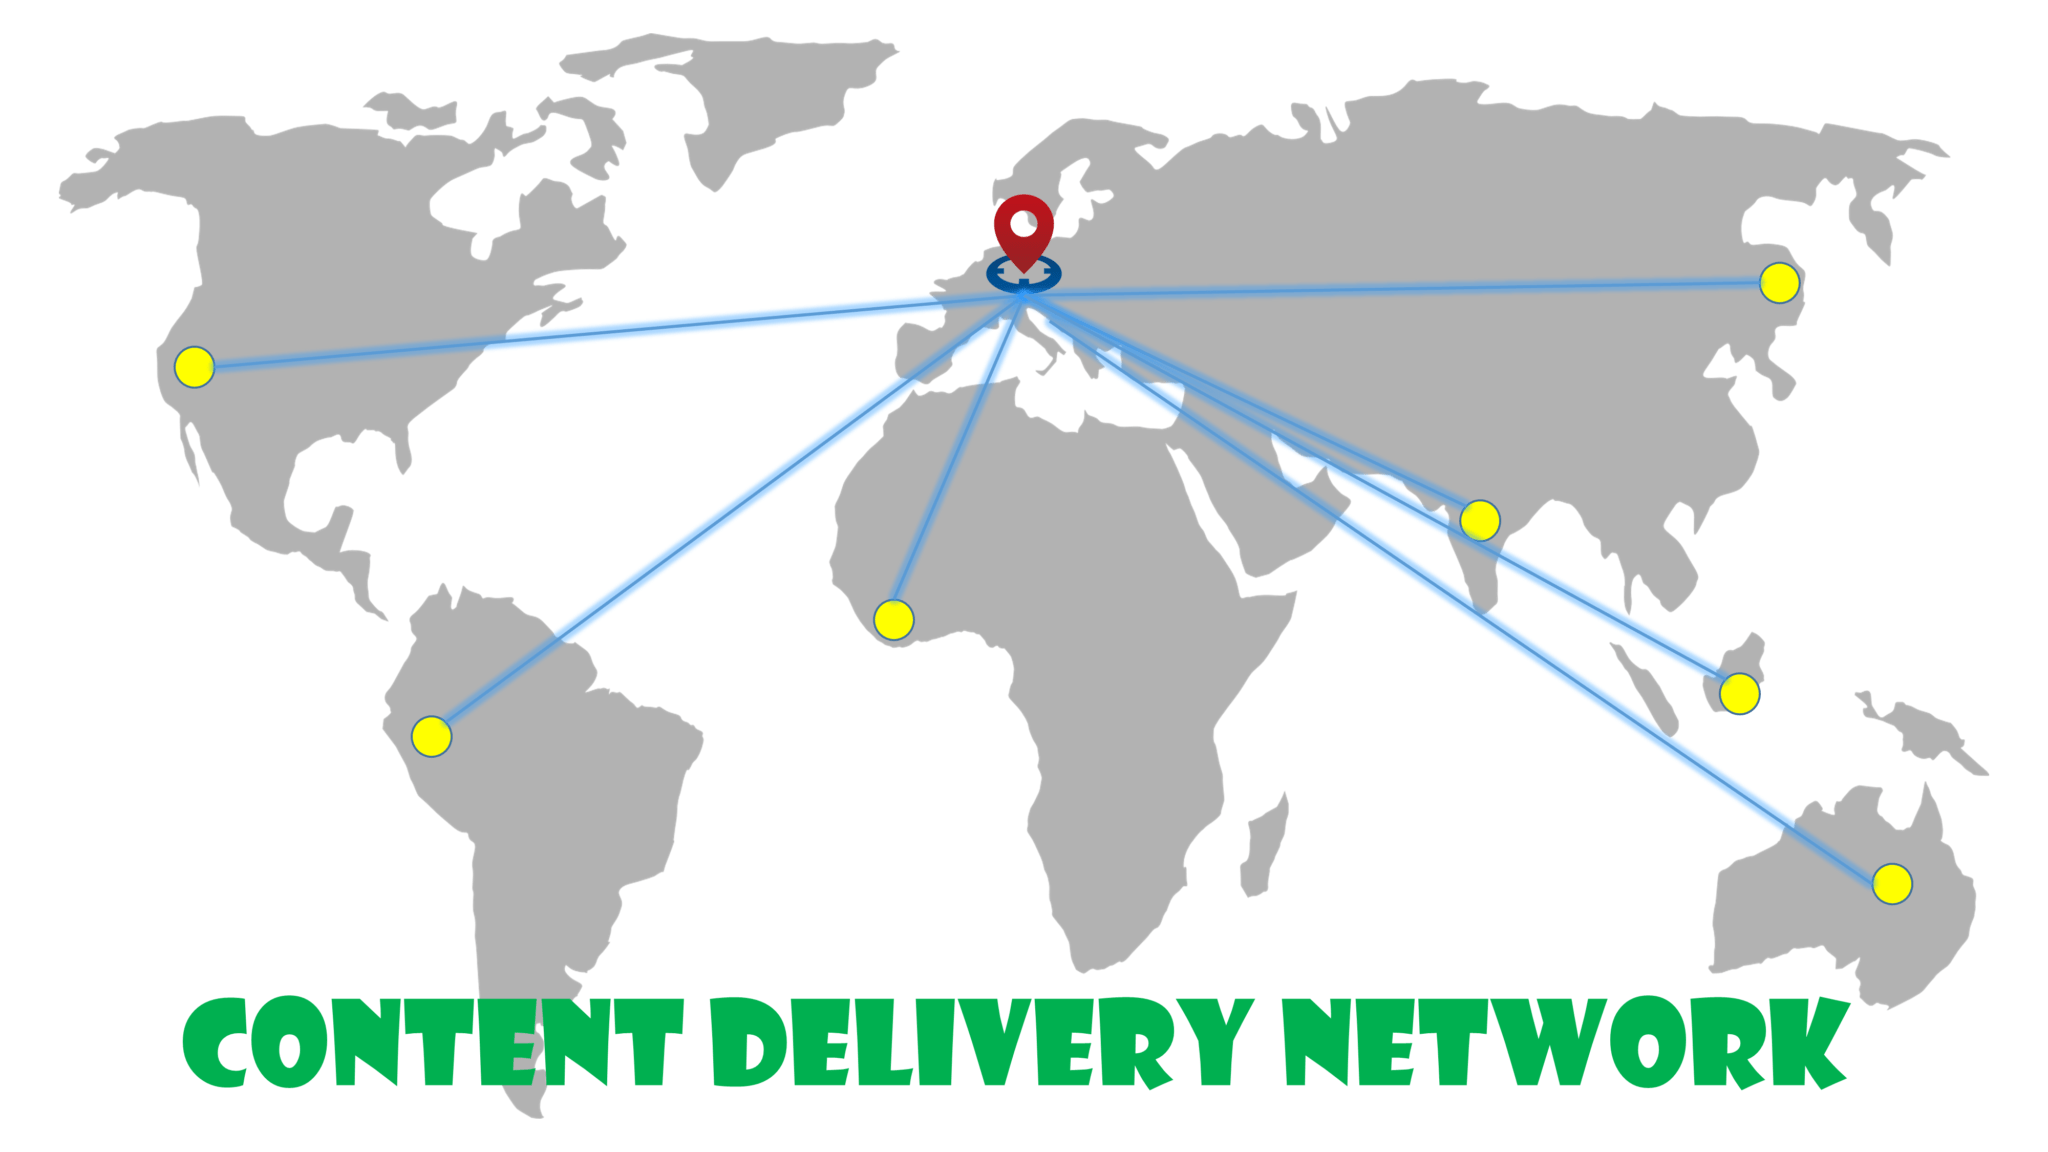 Content Delivery Network